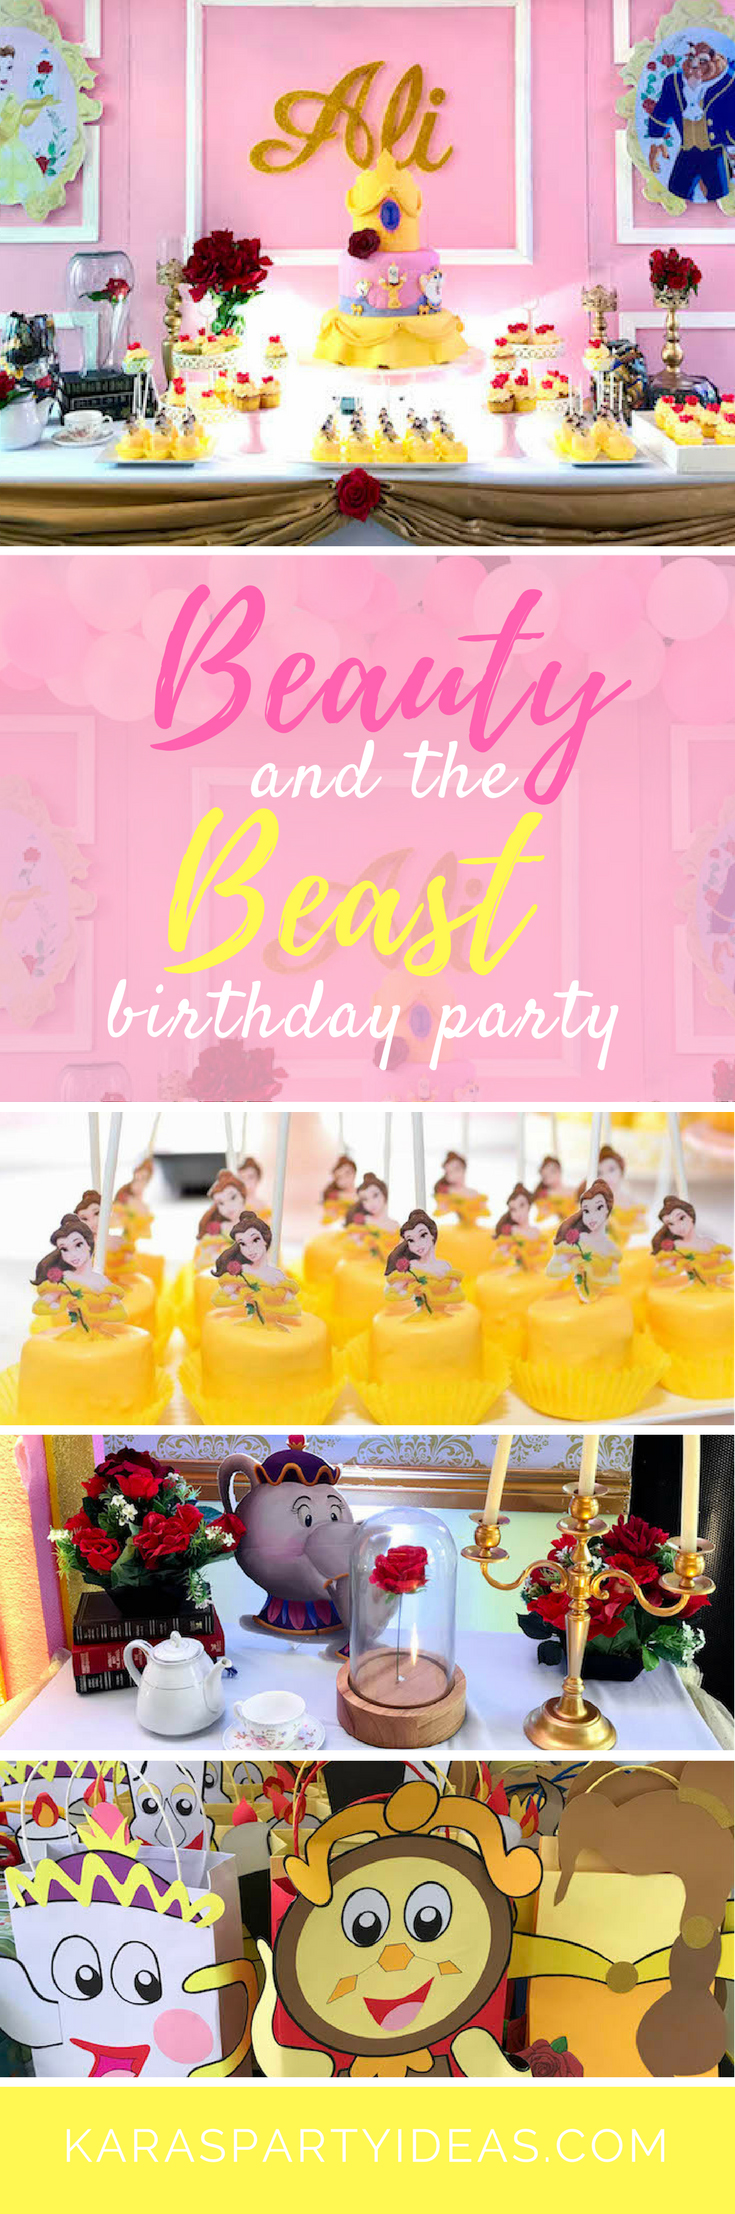 Beauty and the Beast Birthday Party via Kara's Party Ideas - KarasPartyIdeas.com (1)